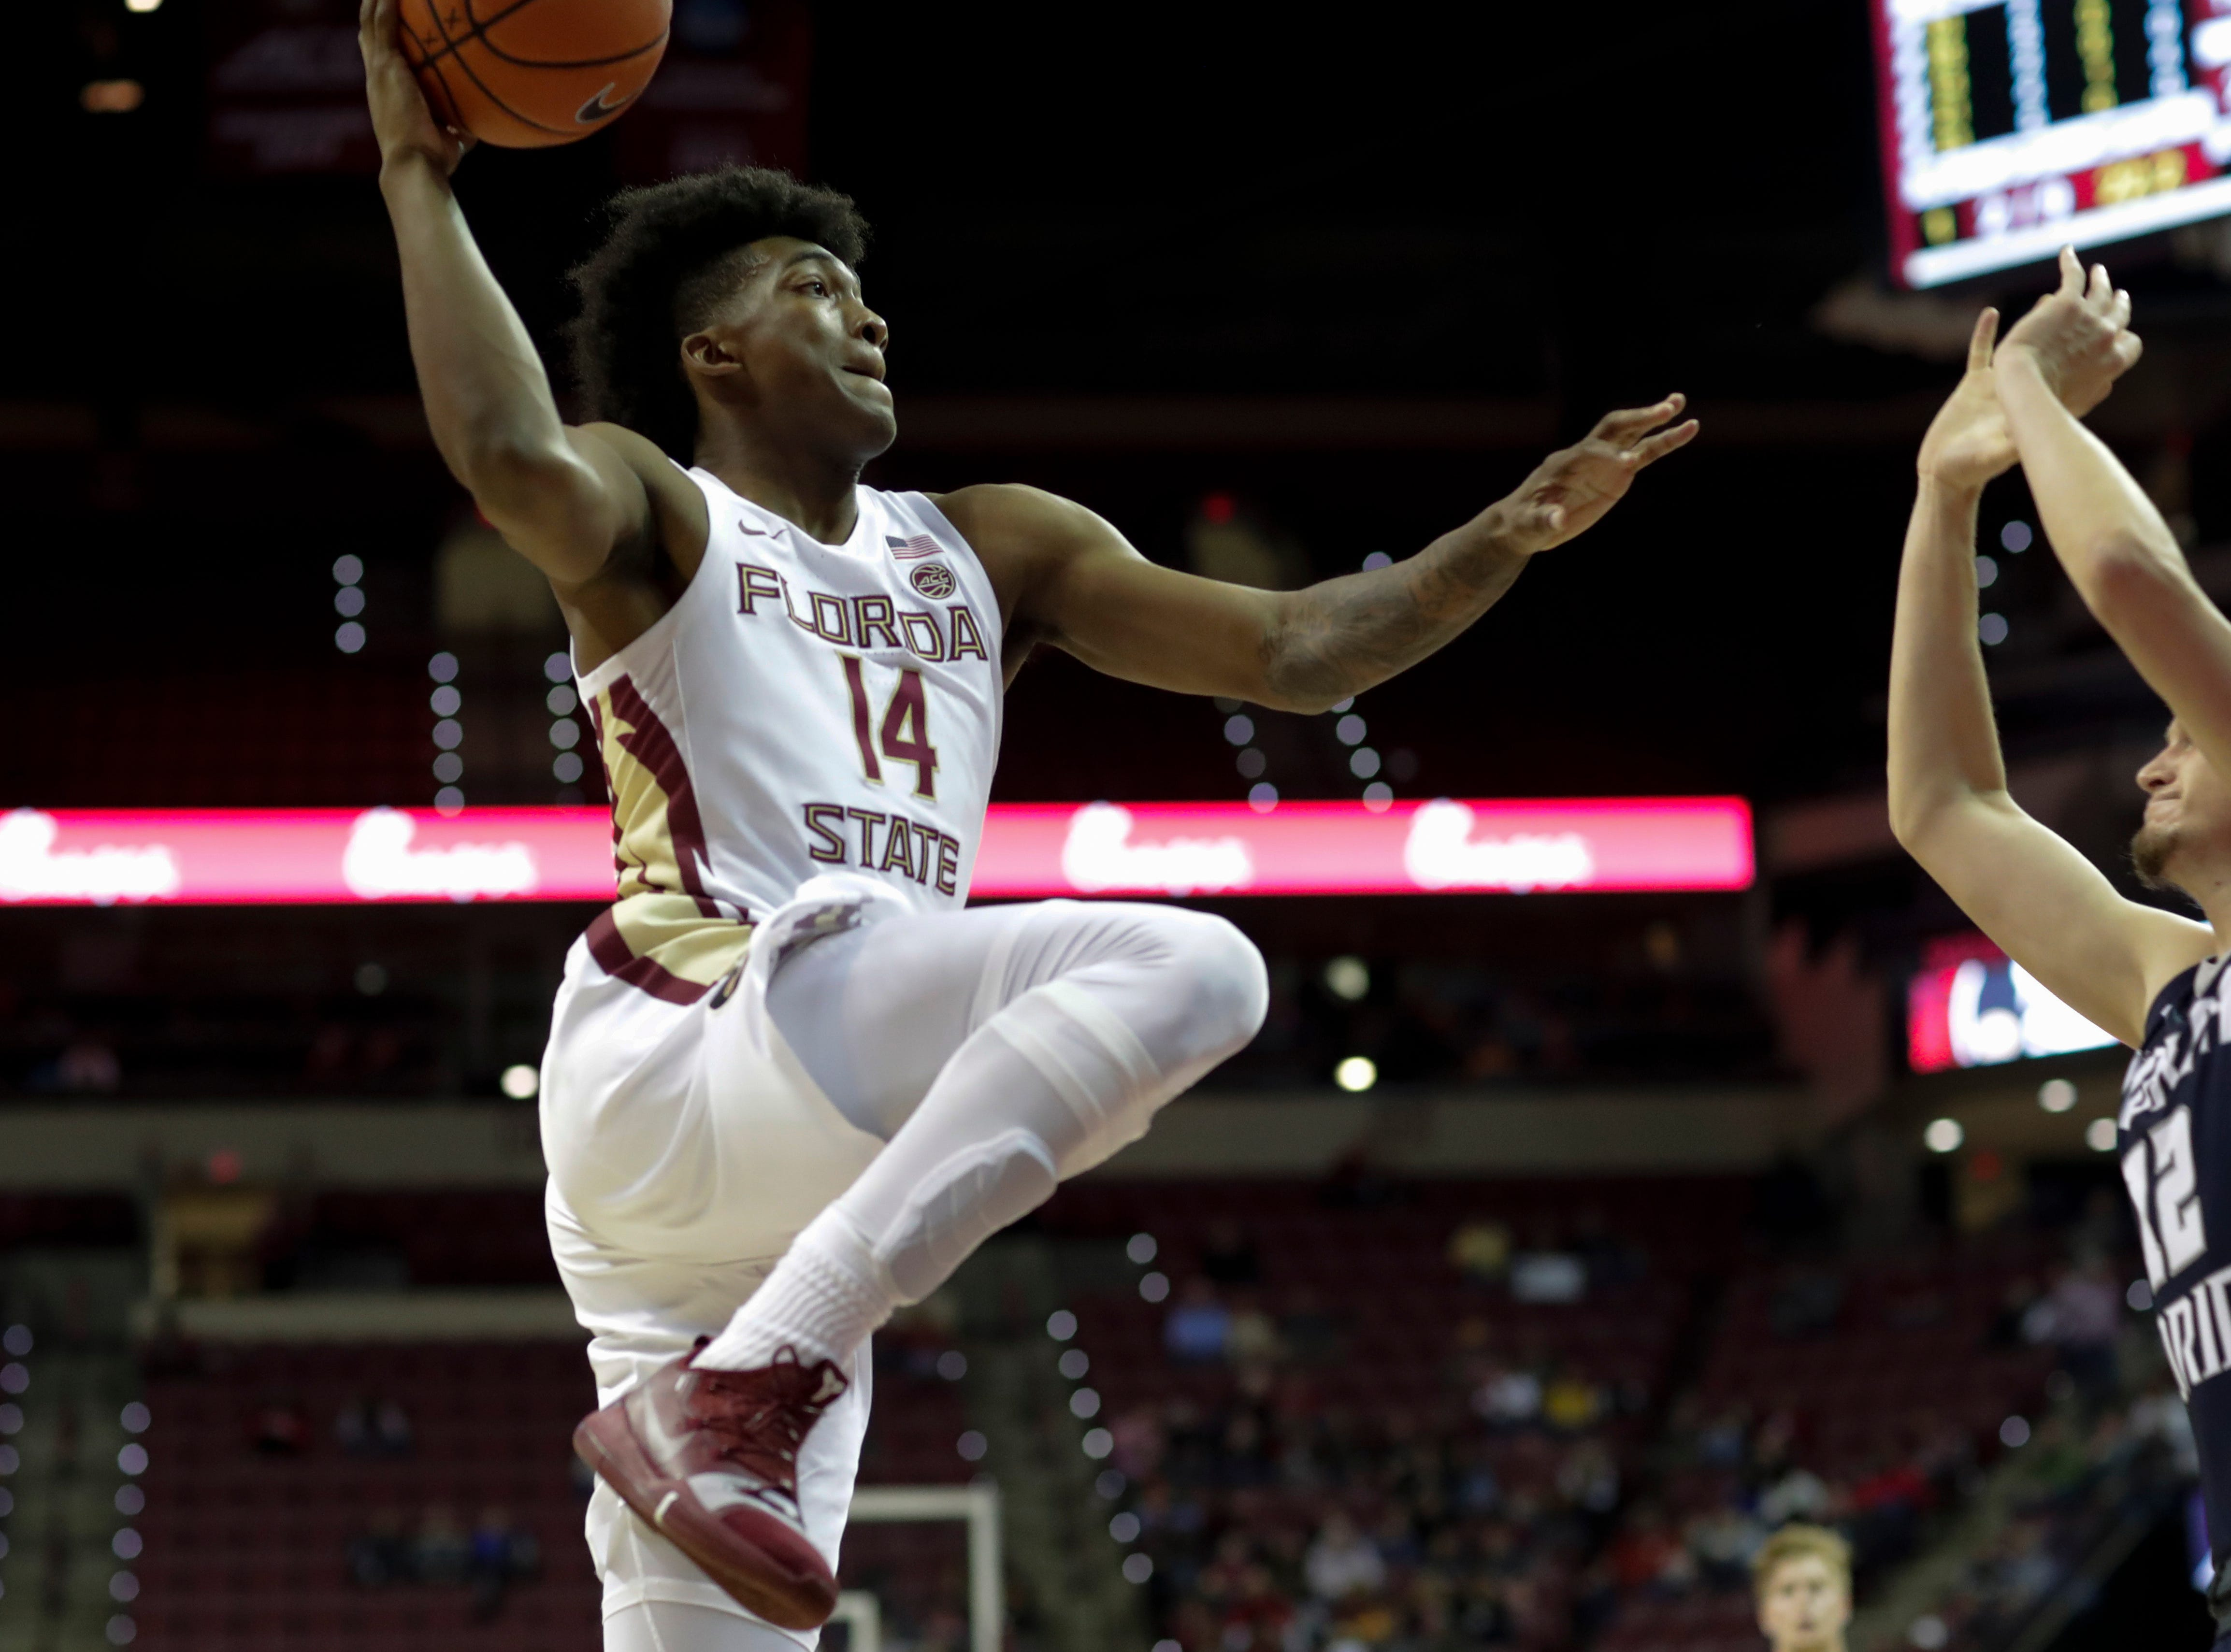 Florida State Seminoles guard Terance Mann (14) drives to the hoop during a game between Florida State University and the University of North Florida at Donald L. Tucker Civic Center in Tallahassee, Fla. Wednesday, Dec. 19, 2018.